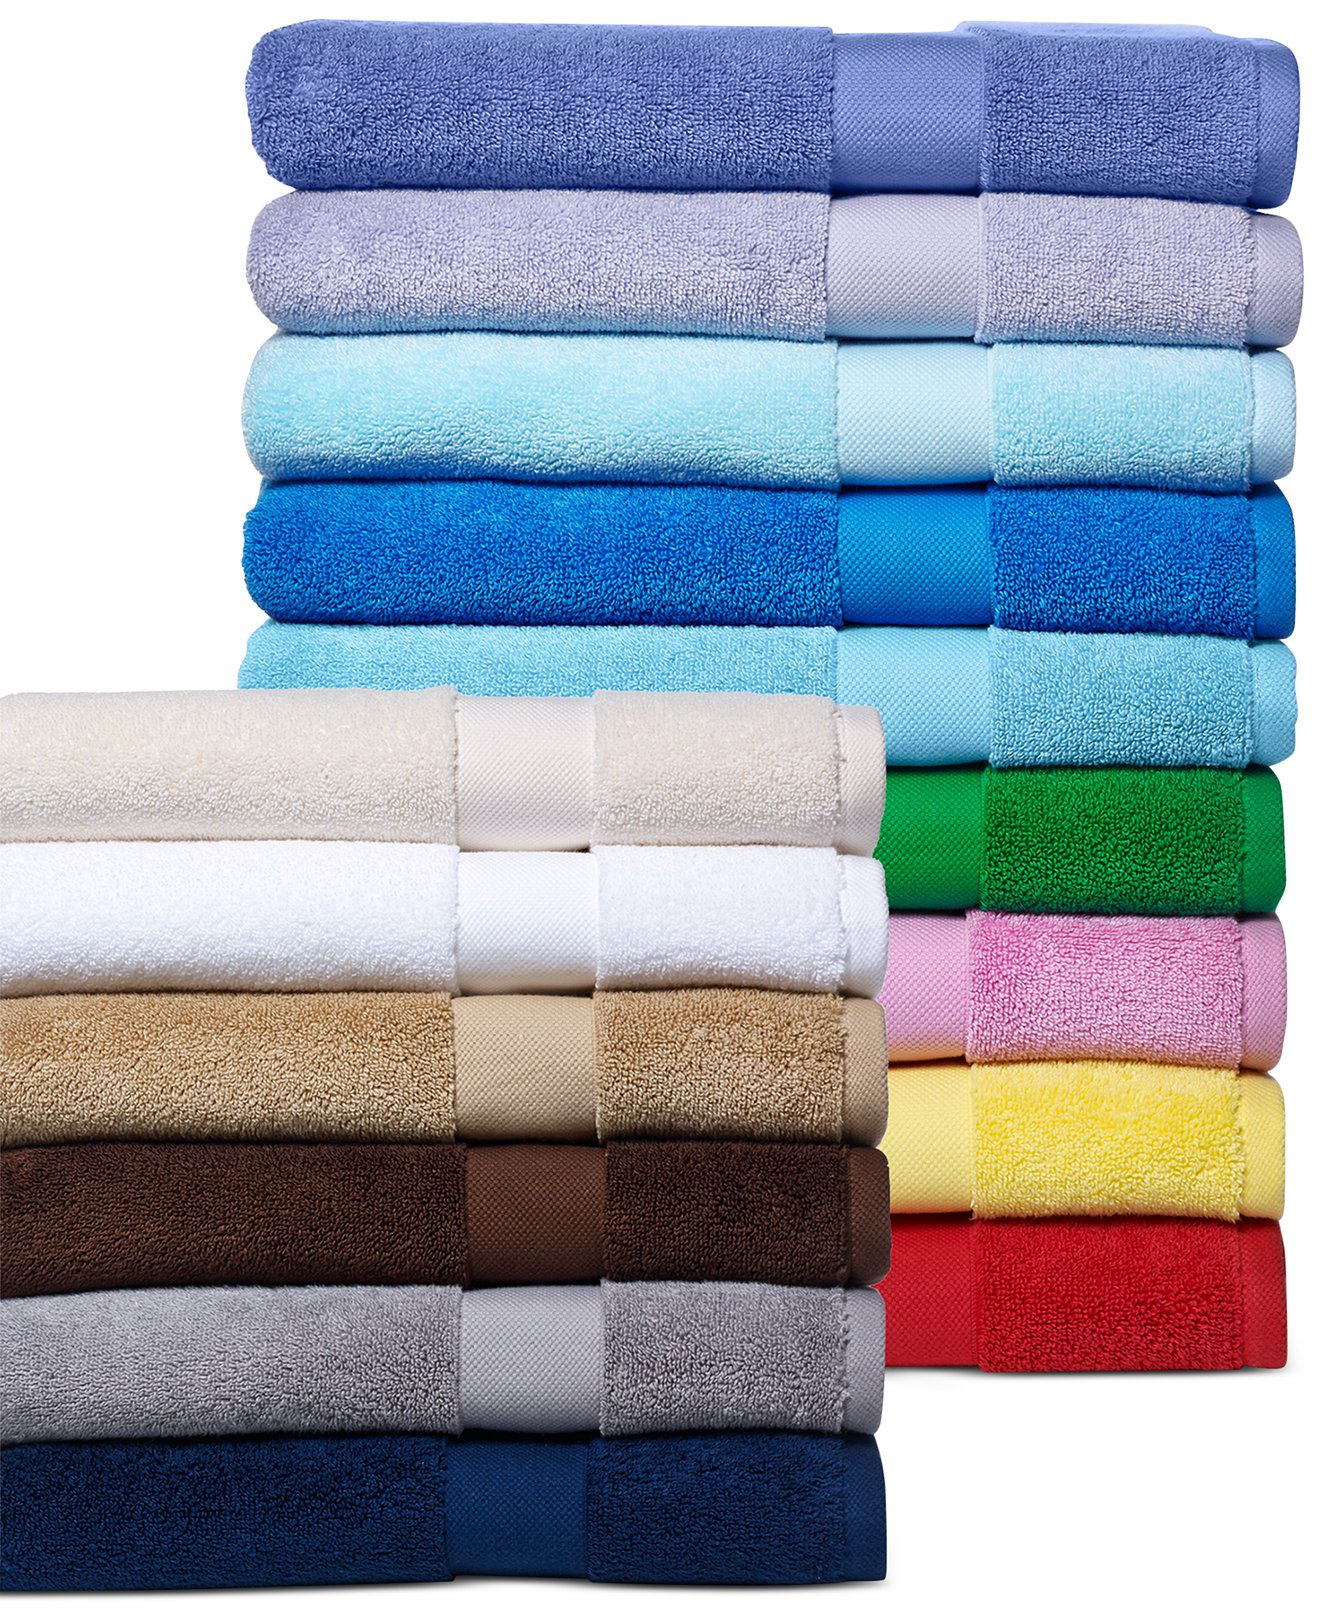 Ralph Lauren Bath Sheet Classy Wescott Bath Towel Collection 100% Cotton  Towels Soft Towels And Inspiration Design